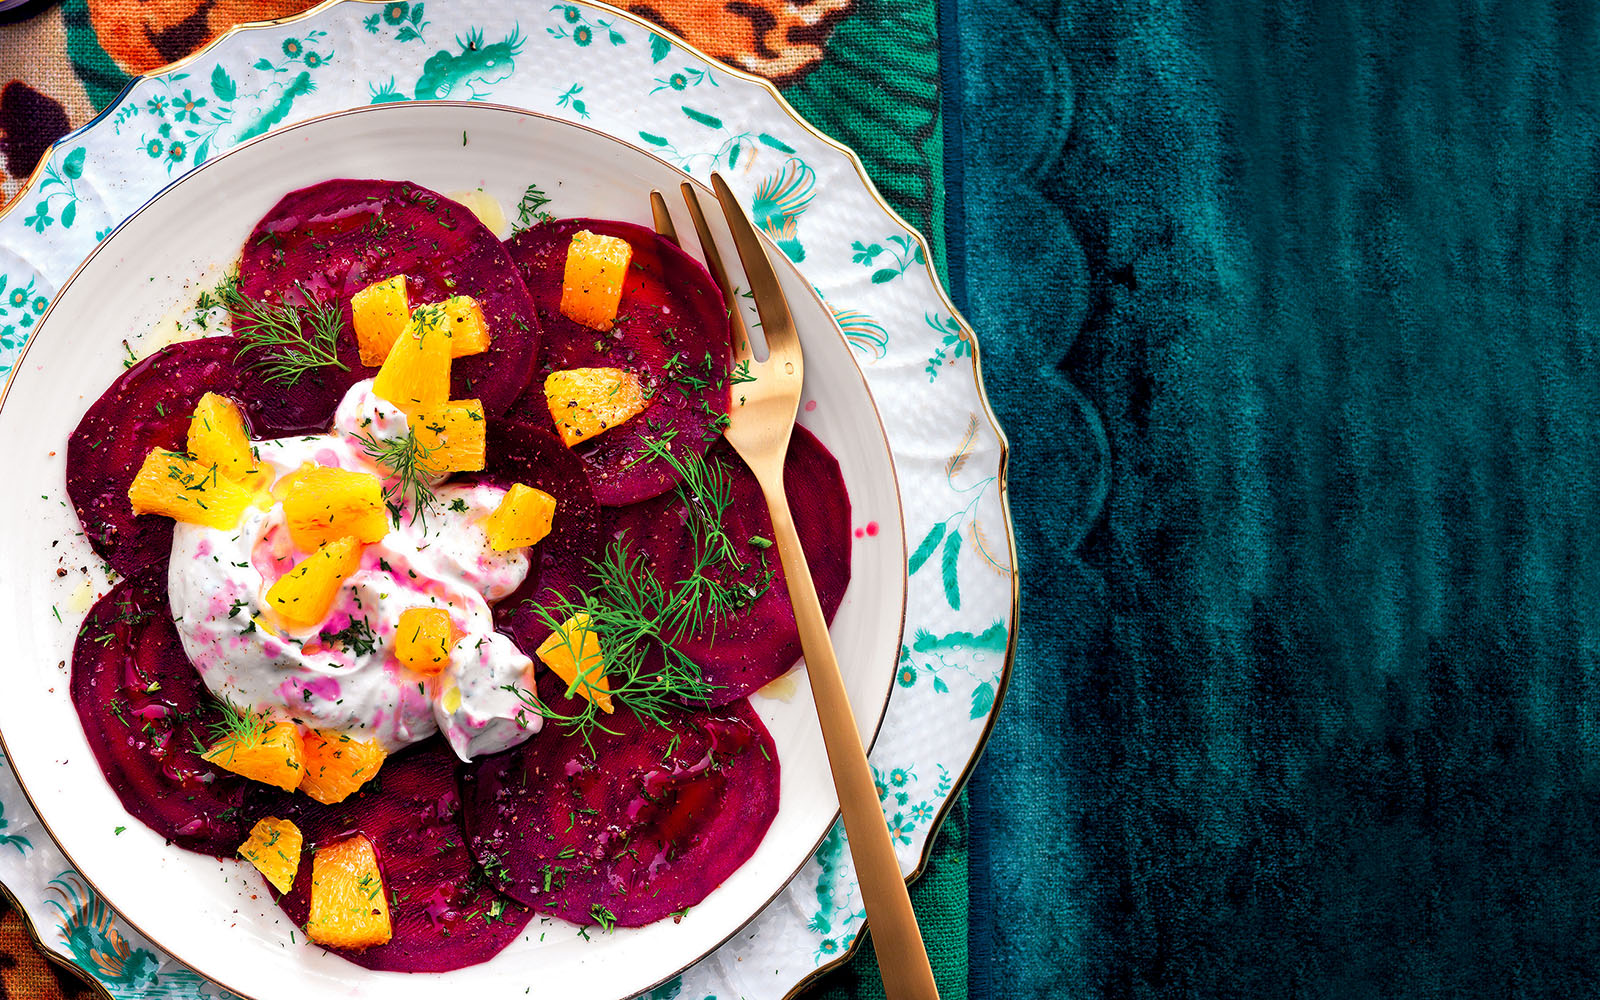 Recipe Carpaccio of beetroot, oranges and goat cheese